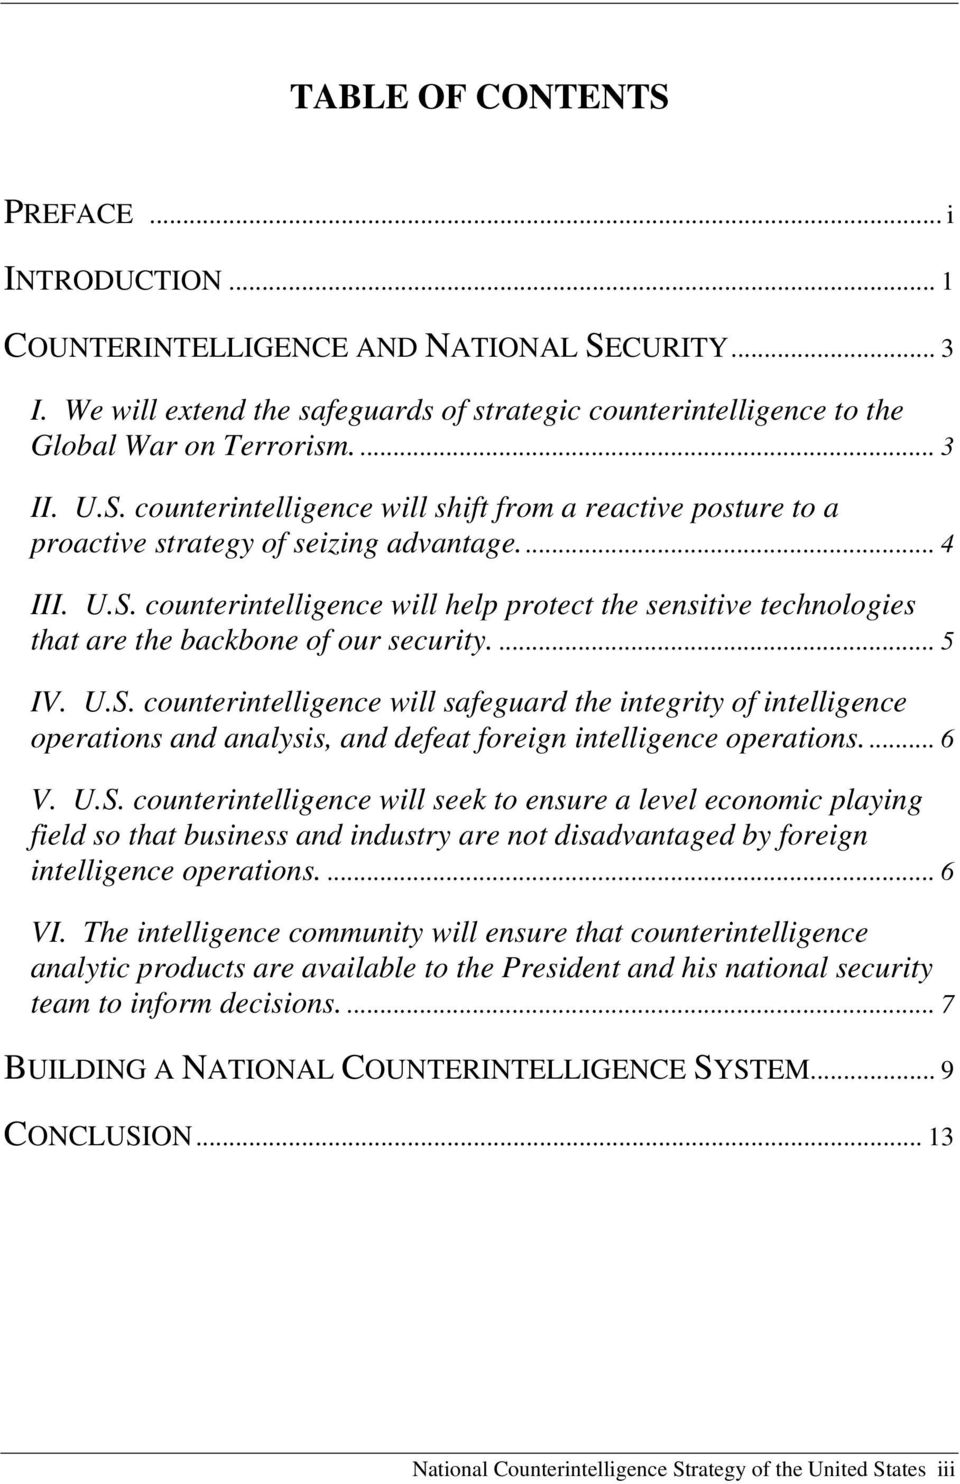 ... 5 IV. U.S. counterintelligence will safeguard the integrity of intelligence operations and analysis, and defeat foreign intelligence operations.... 6 V. U.S. counterintelligence will seek to ensure a level economic playing field so that business and industry are not disadvantaged by foreign intelligence operations.